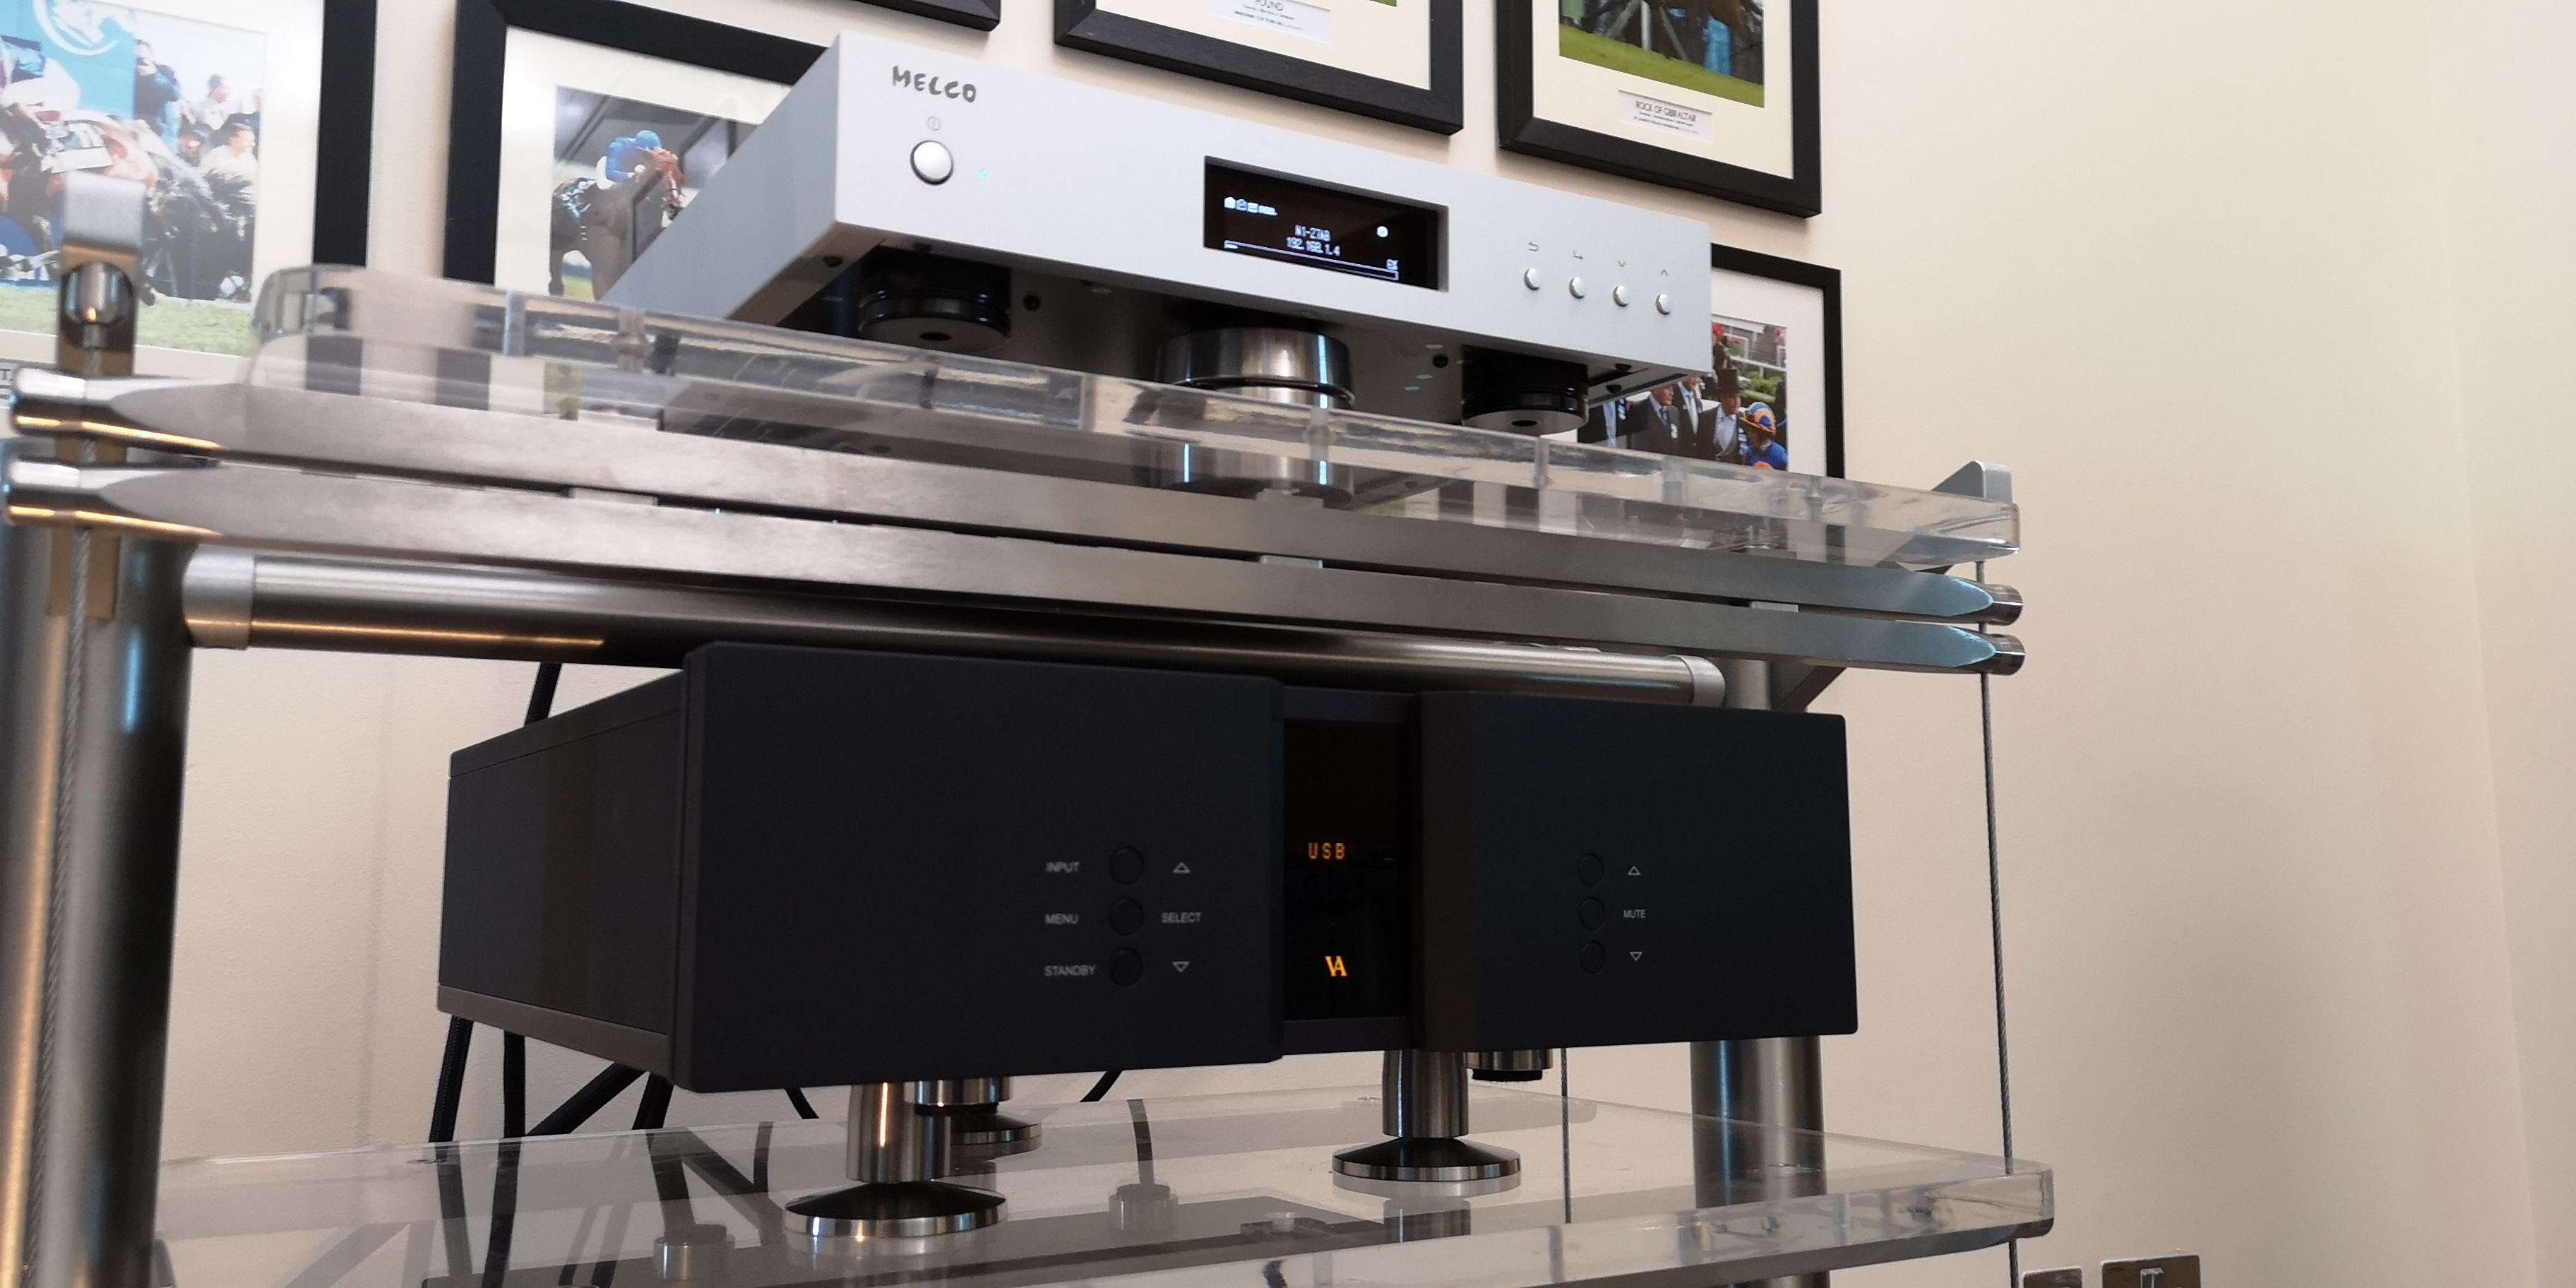 Vitus and Melco @ Audio Therapy